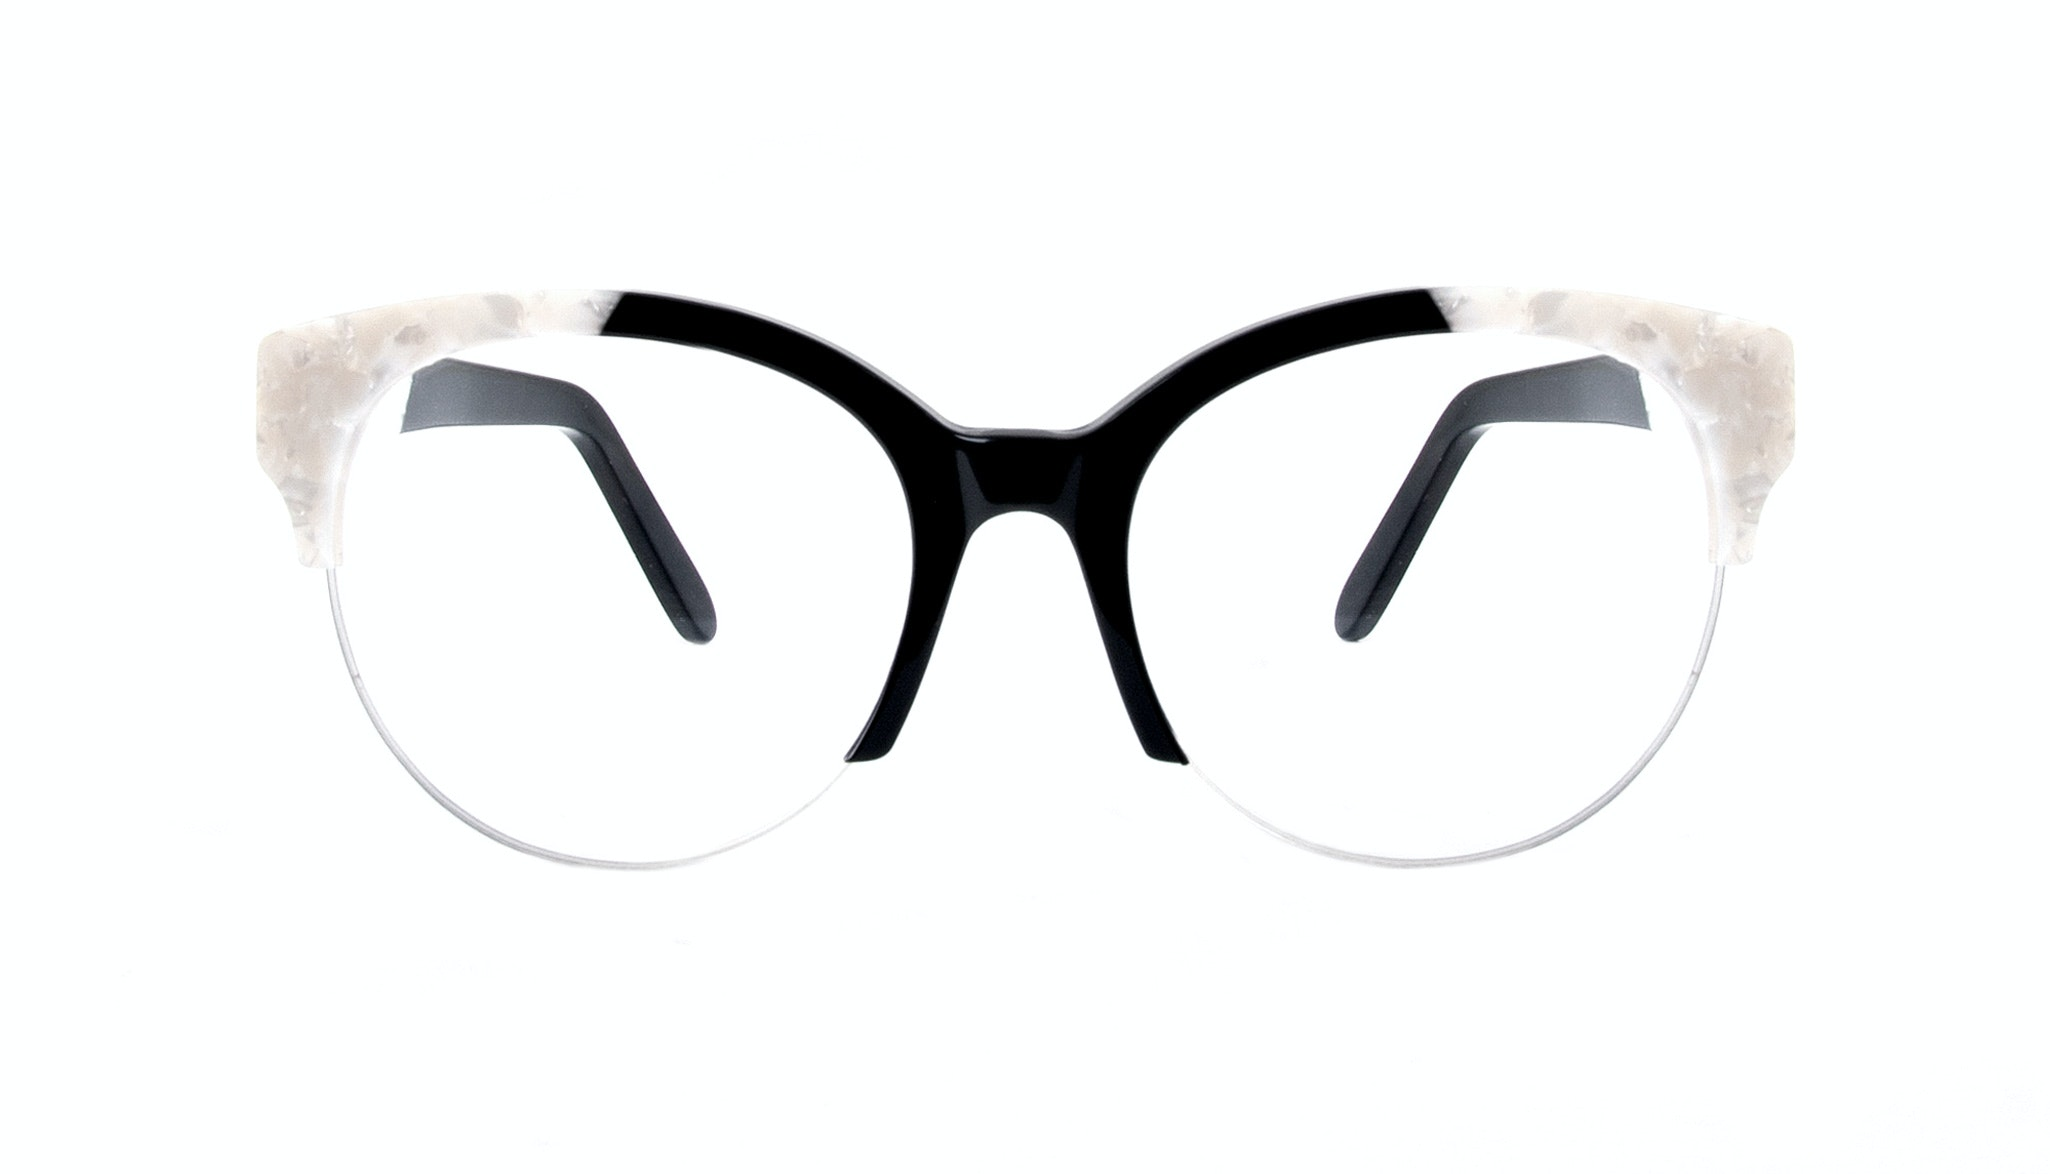 Affordable Fashion Glasses Cat Eye Round Semi-Rimless Eyeglasses Women Eclipse Light Onyx Pearl